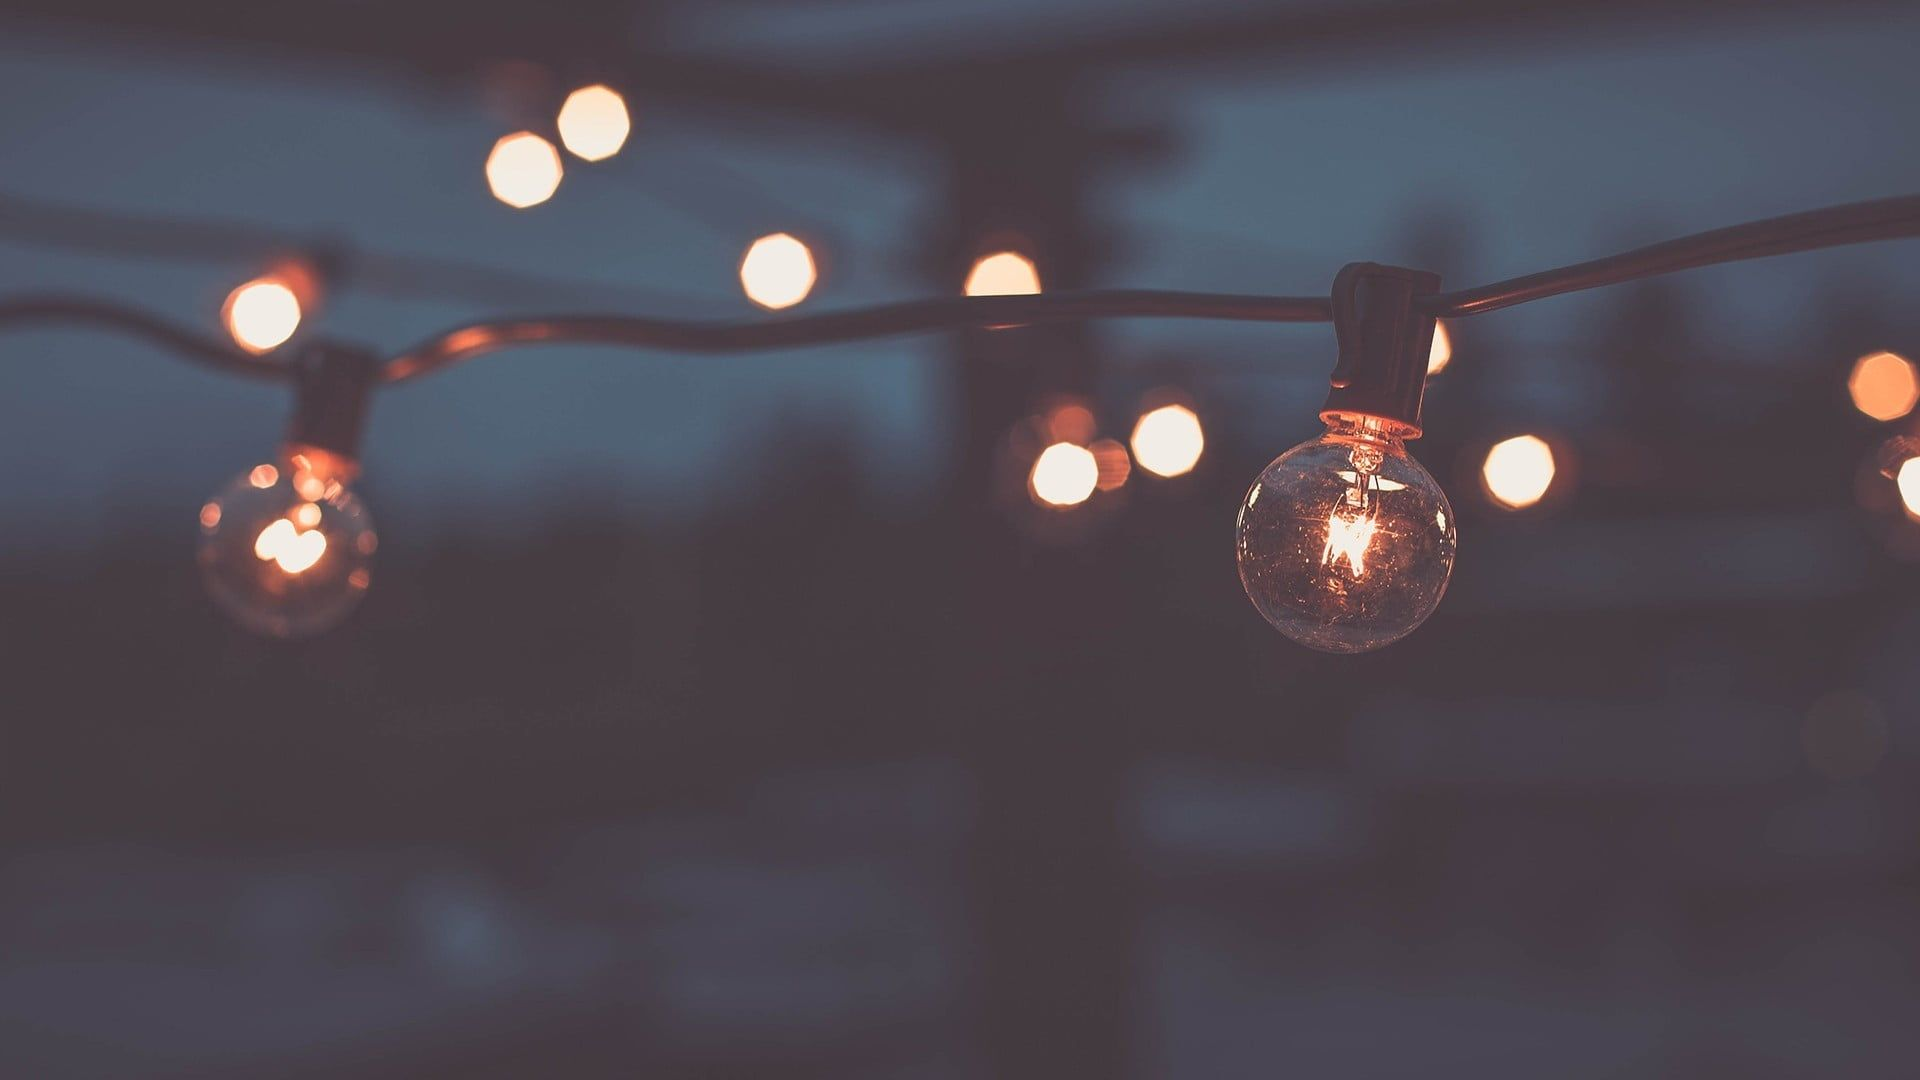 HD wallpaper: clear bulb string lights, shallow focus photography of string bulb lights during night time